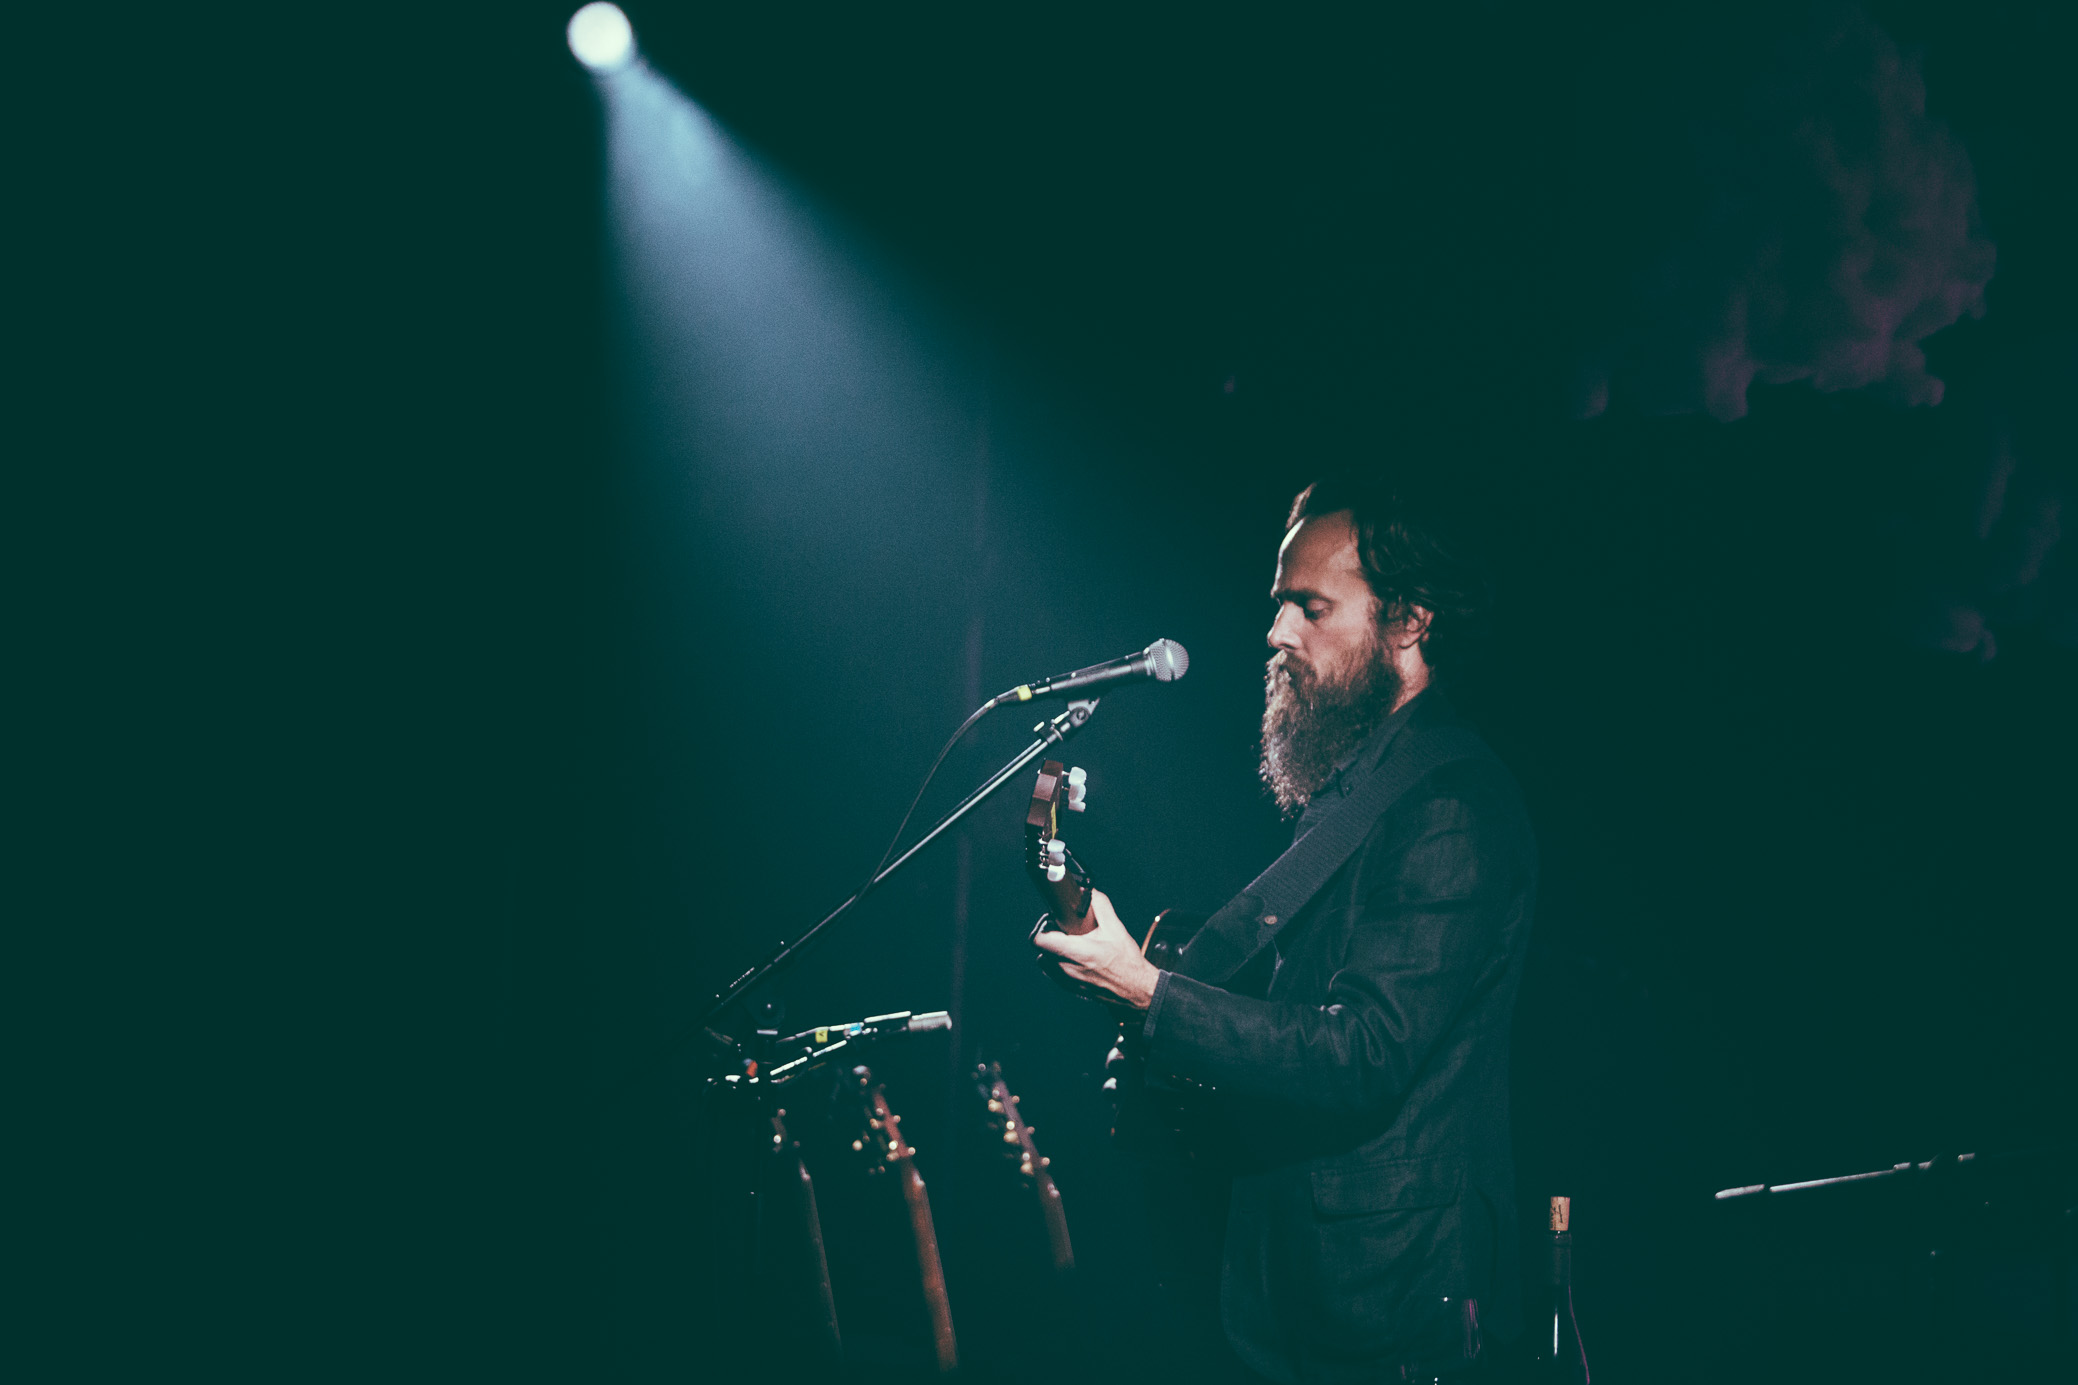 Sam Beam of Iron & Wine performs in concert at Saturn Birmingham in Birmingham, Alabama on August 29th, 2017. (Photo by David A. Smith/DSmithScenes)